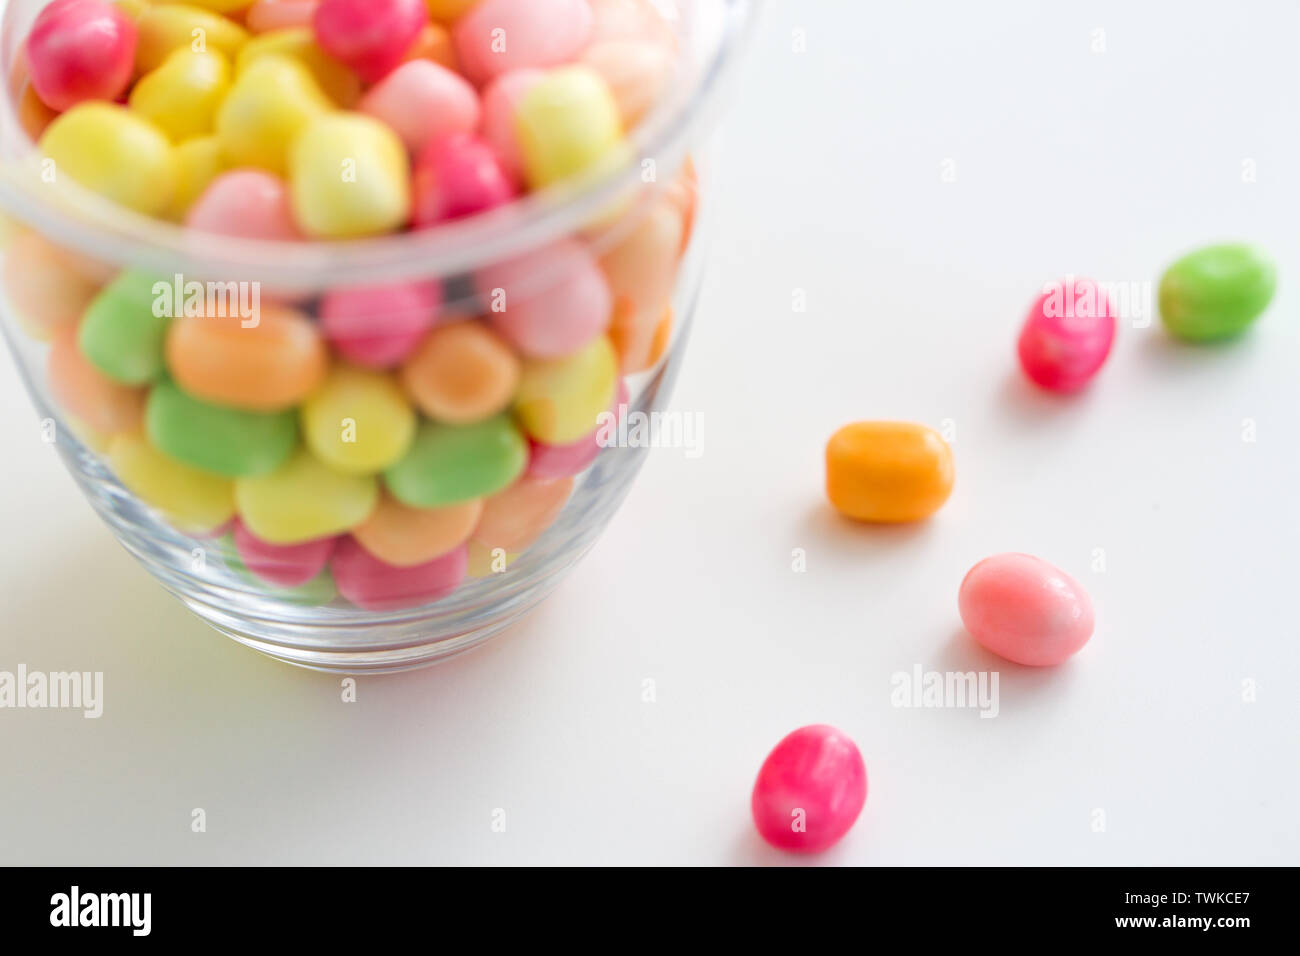 close up of glass jar with colorful candy drops - Stock Image